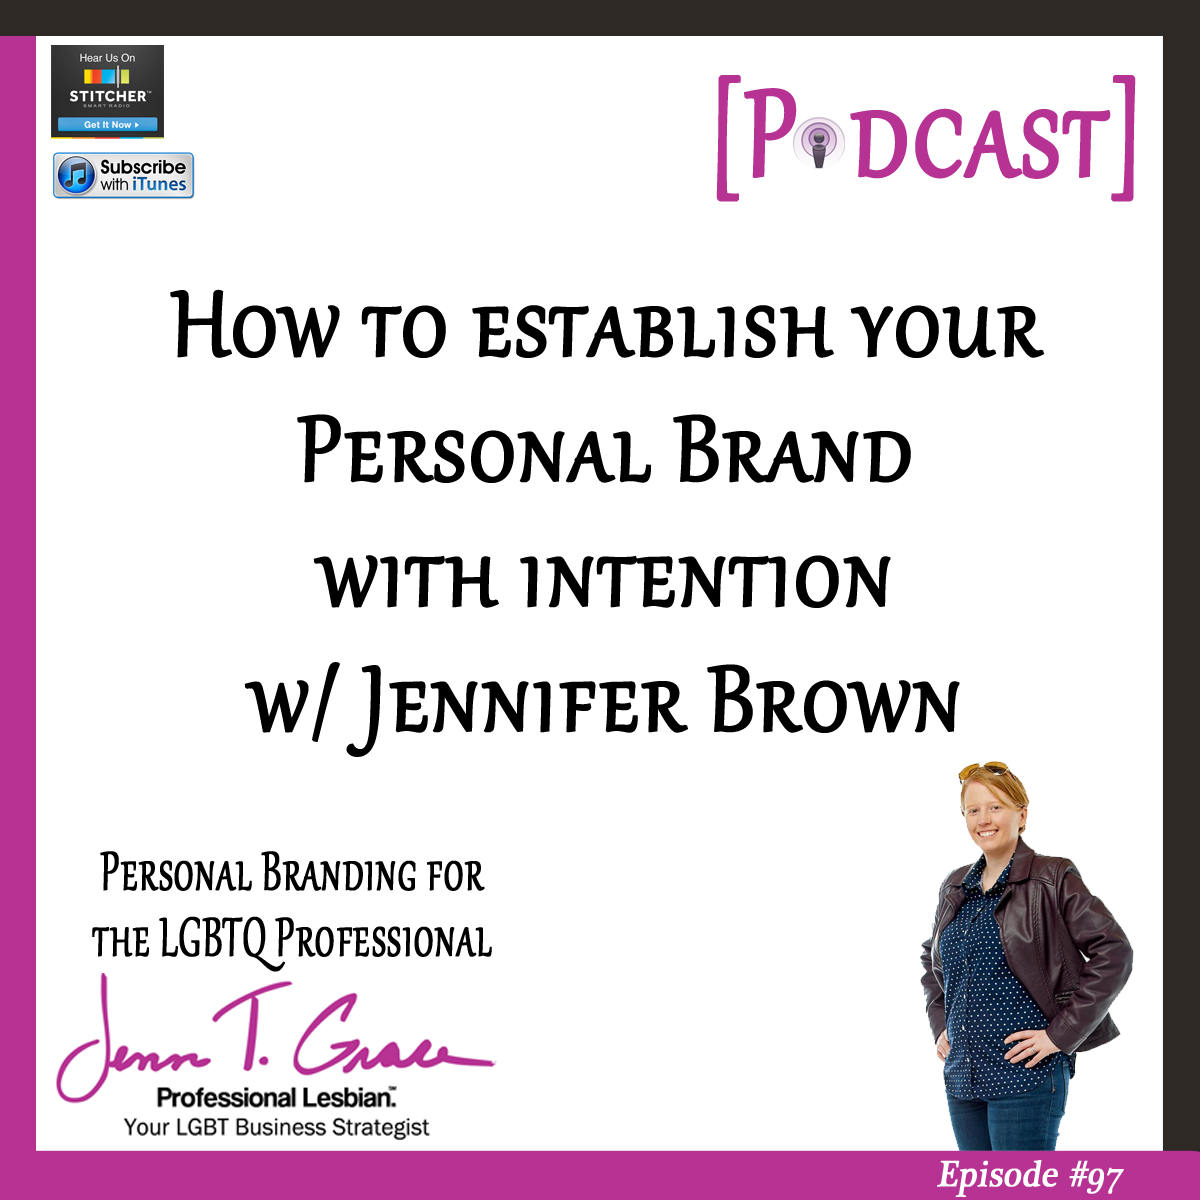 Personal Branding for the LGBTQ Professional - #97: How to Establish Your Personal Brand With Intention With Jennifer Brown